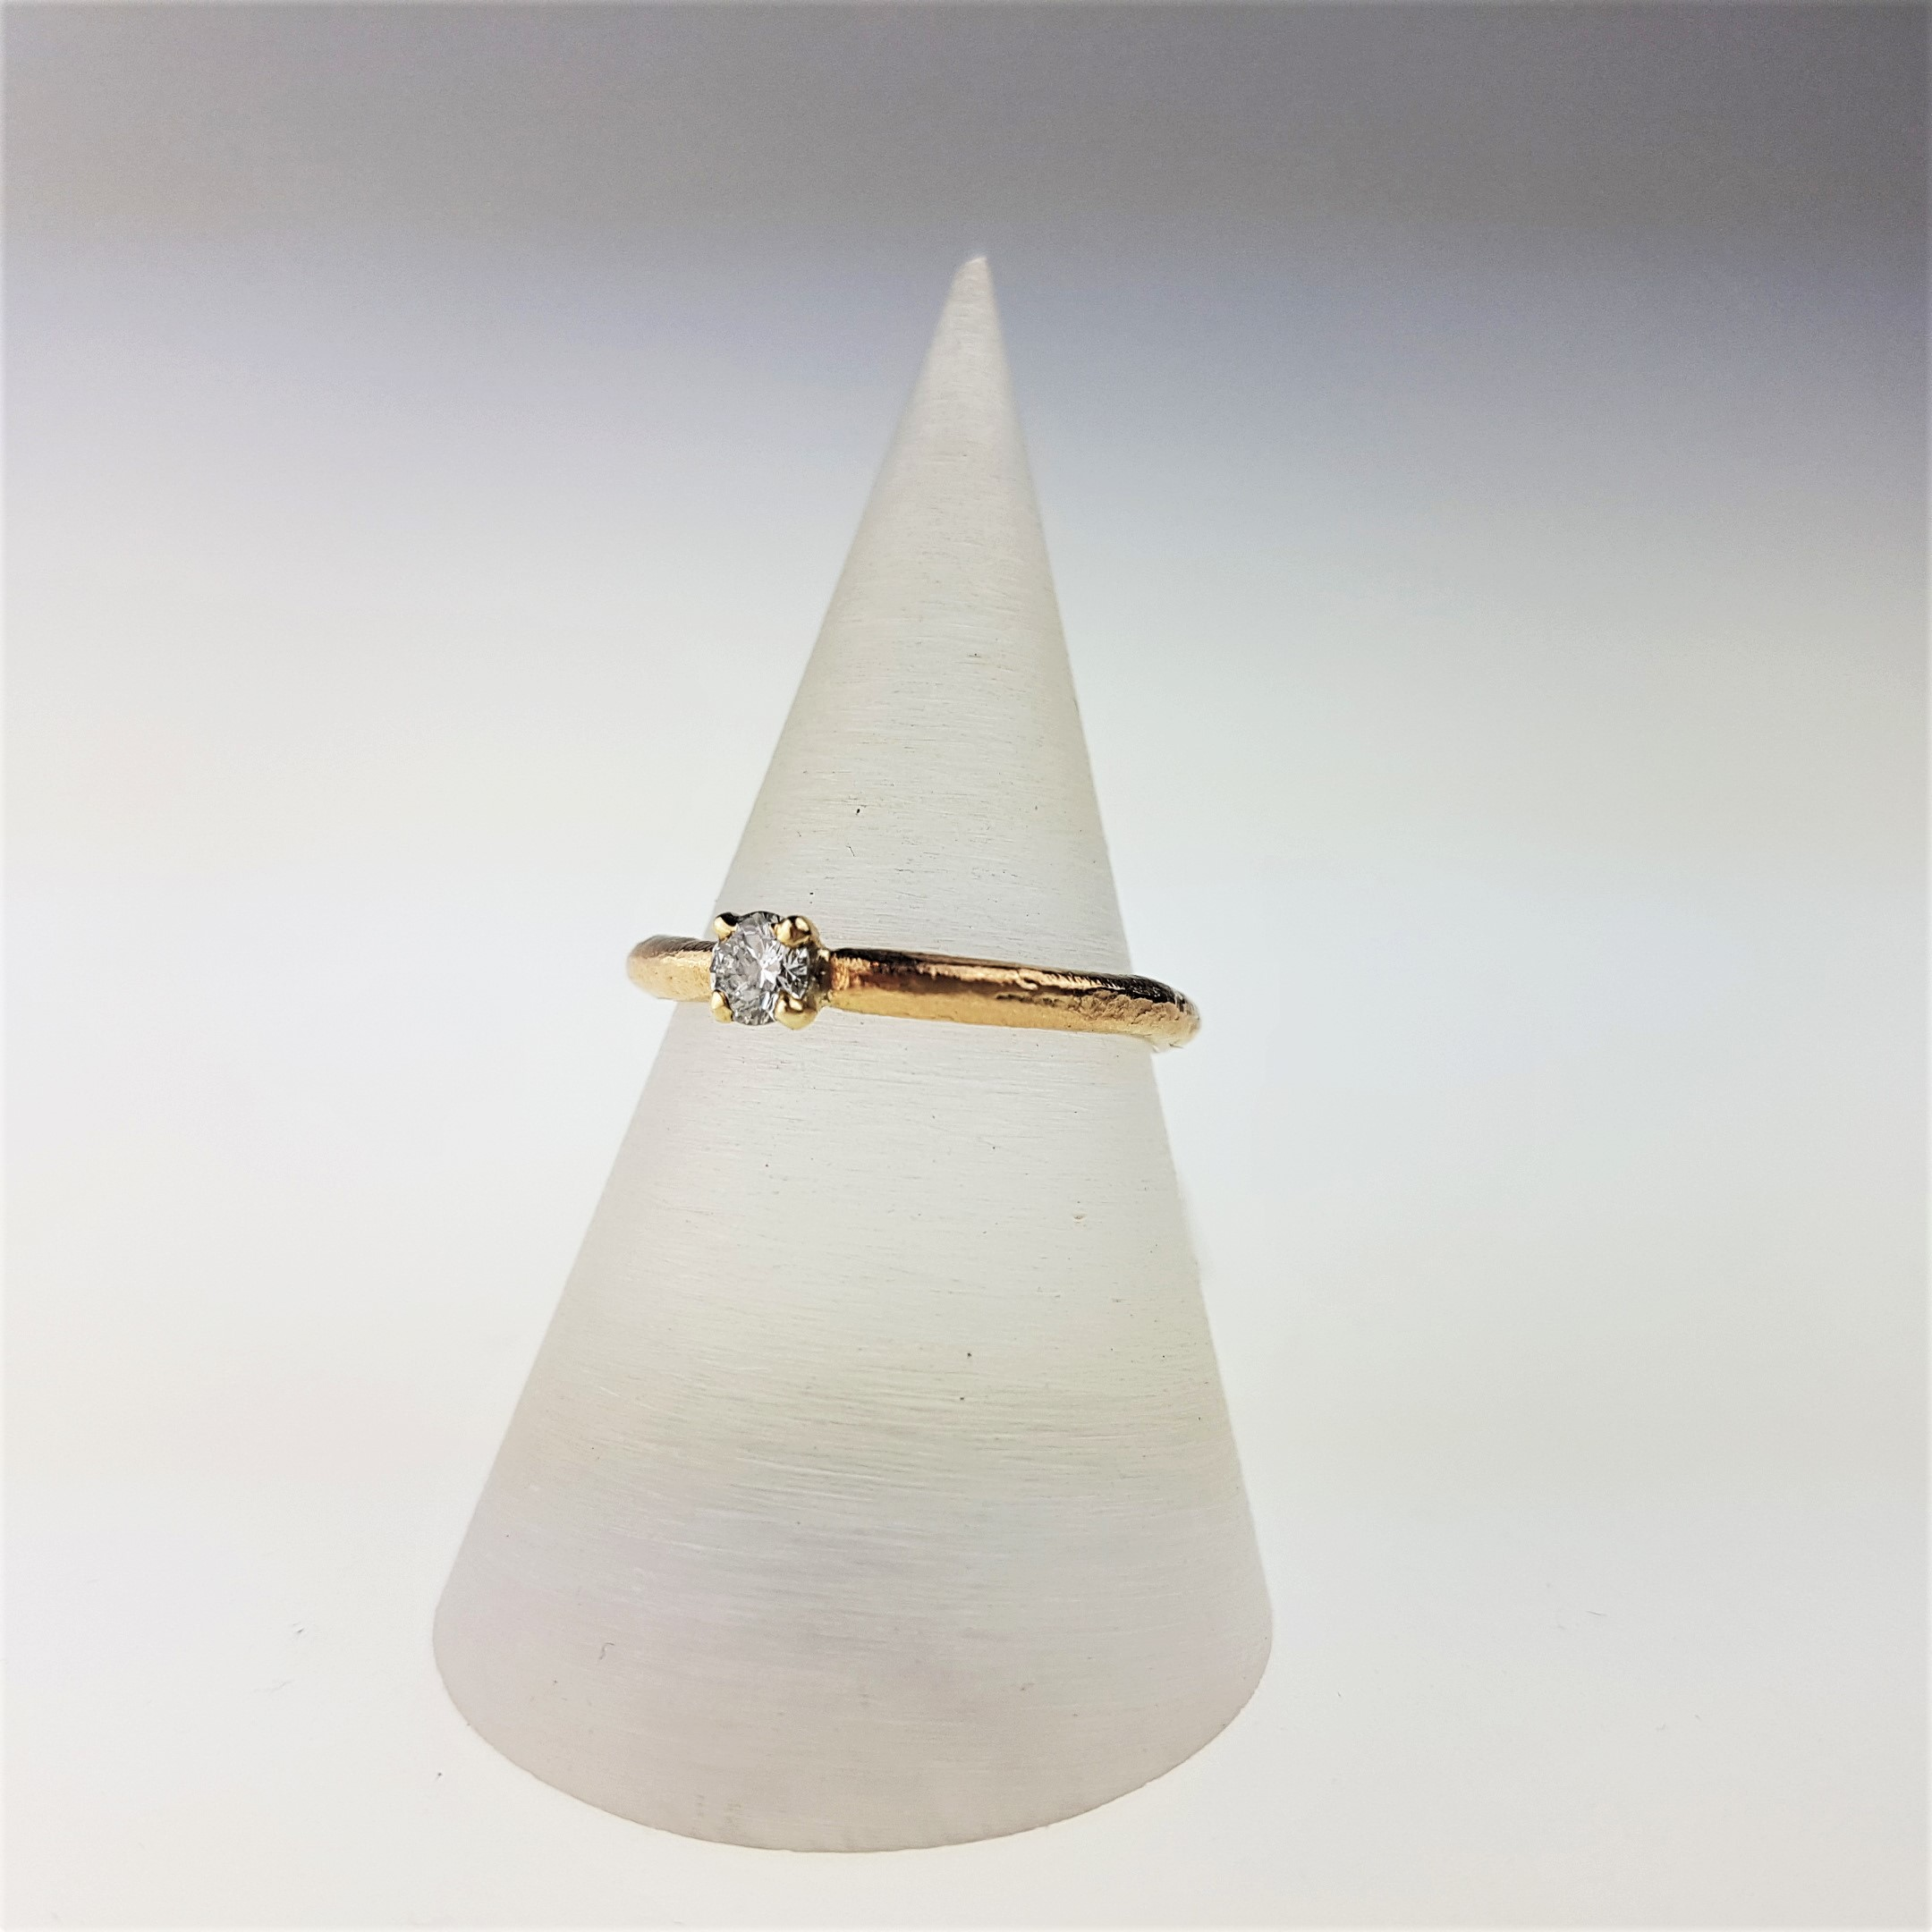 Beach Memories - This claw set diamond ring is £1170 made by Justin Duance in 9ct gold with a 3.5mm white diamond. The Cornish jeweller creates his natural texture by casting in sand. We can even personalise your wedding rings by using your own sand or from your favourite beach in Cornwall, just get in touch!